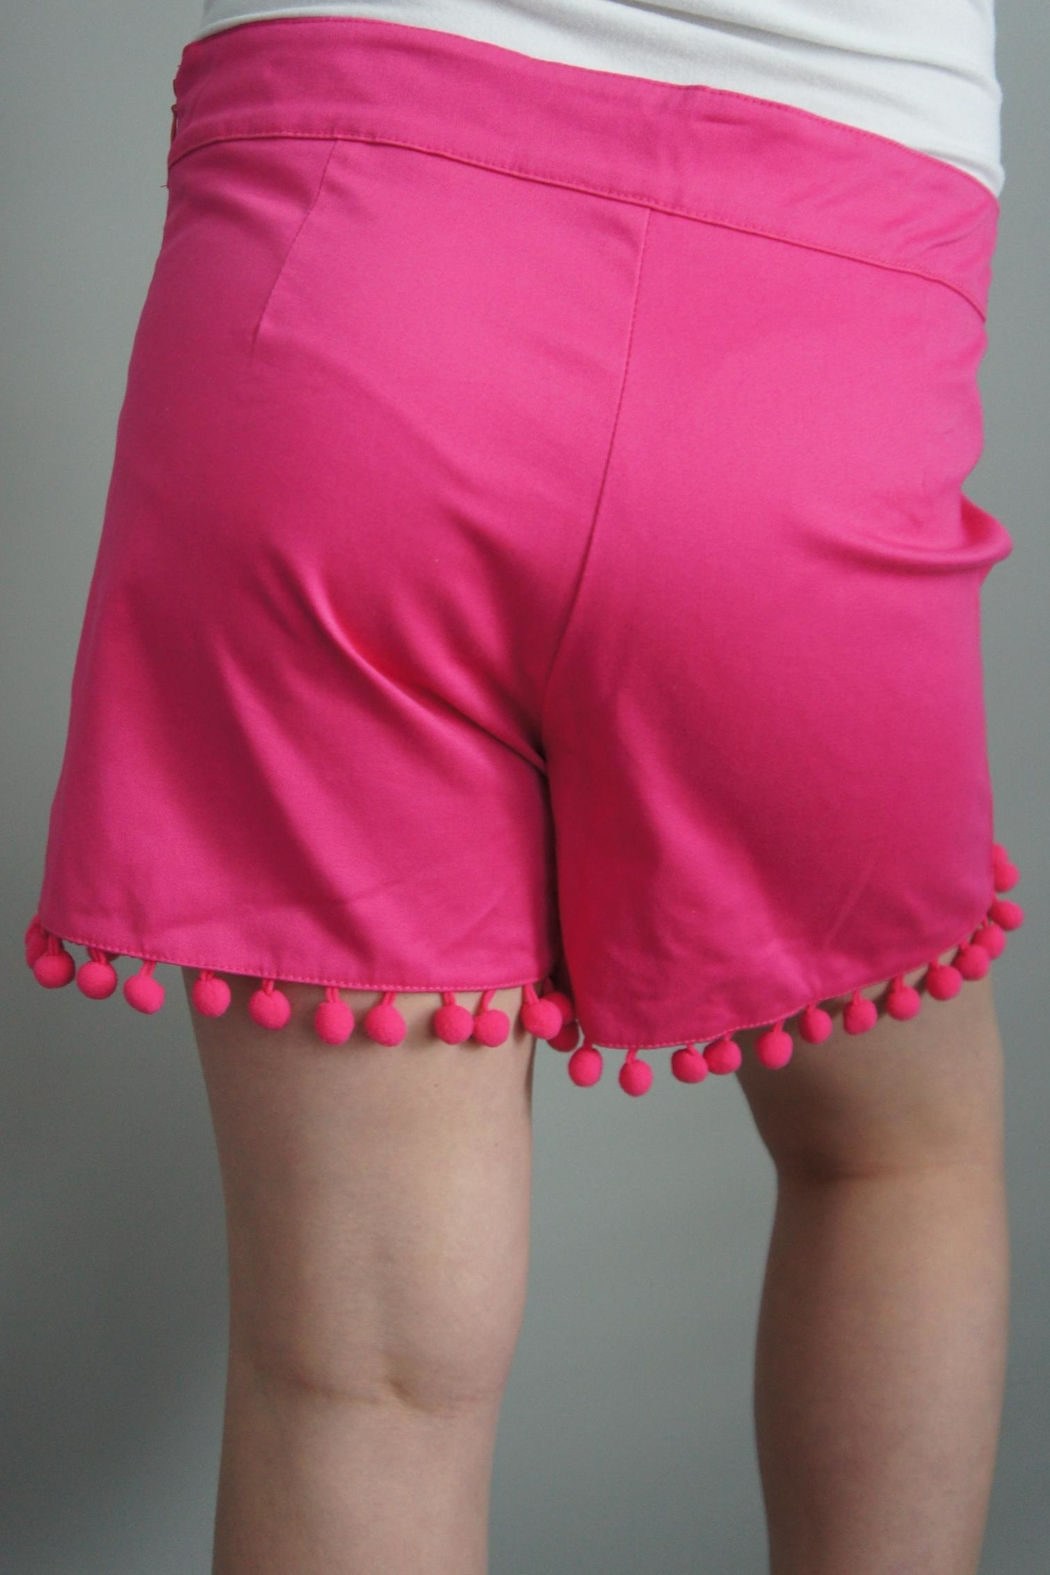 Anna Lane by MSC Collection Pompom Tailored Shorts - Main Image